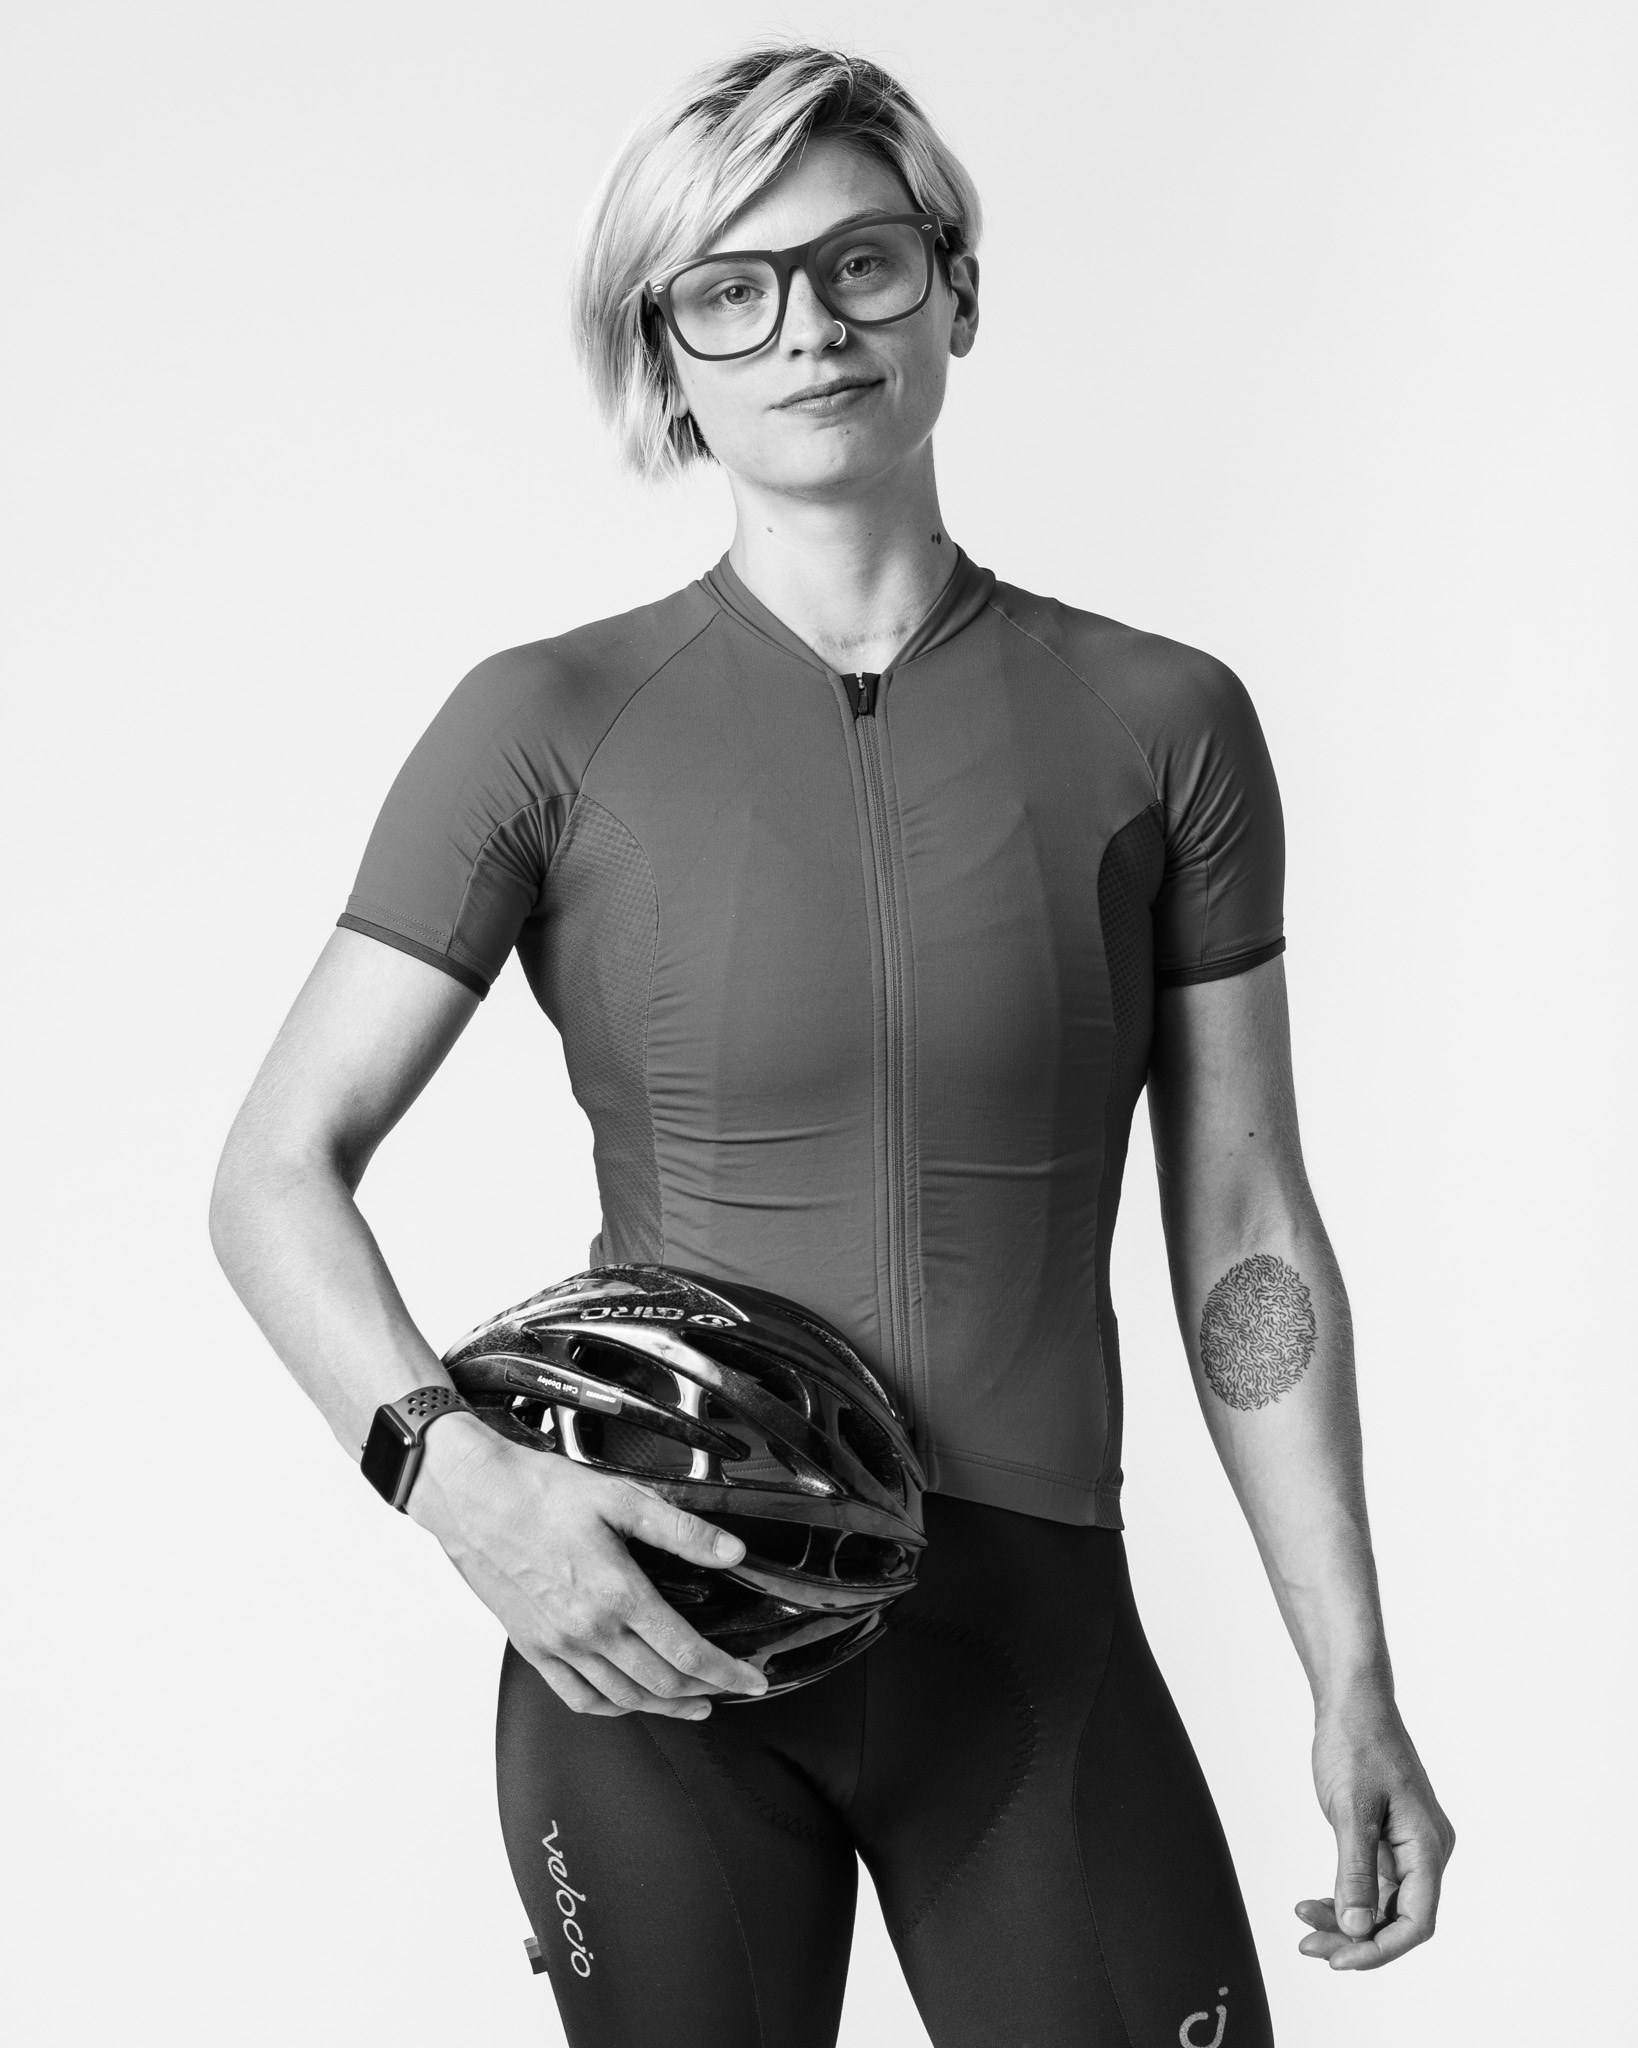 Cyclist Cait Dooley and Pro racer Peter Stetina | Bicycling Magazine